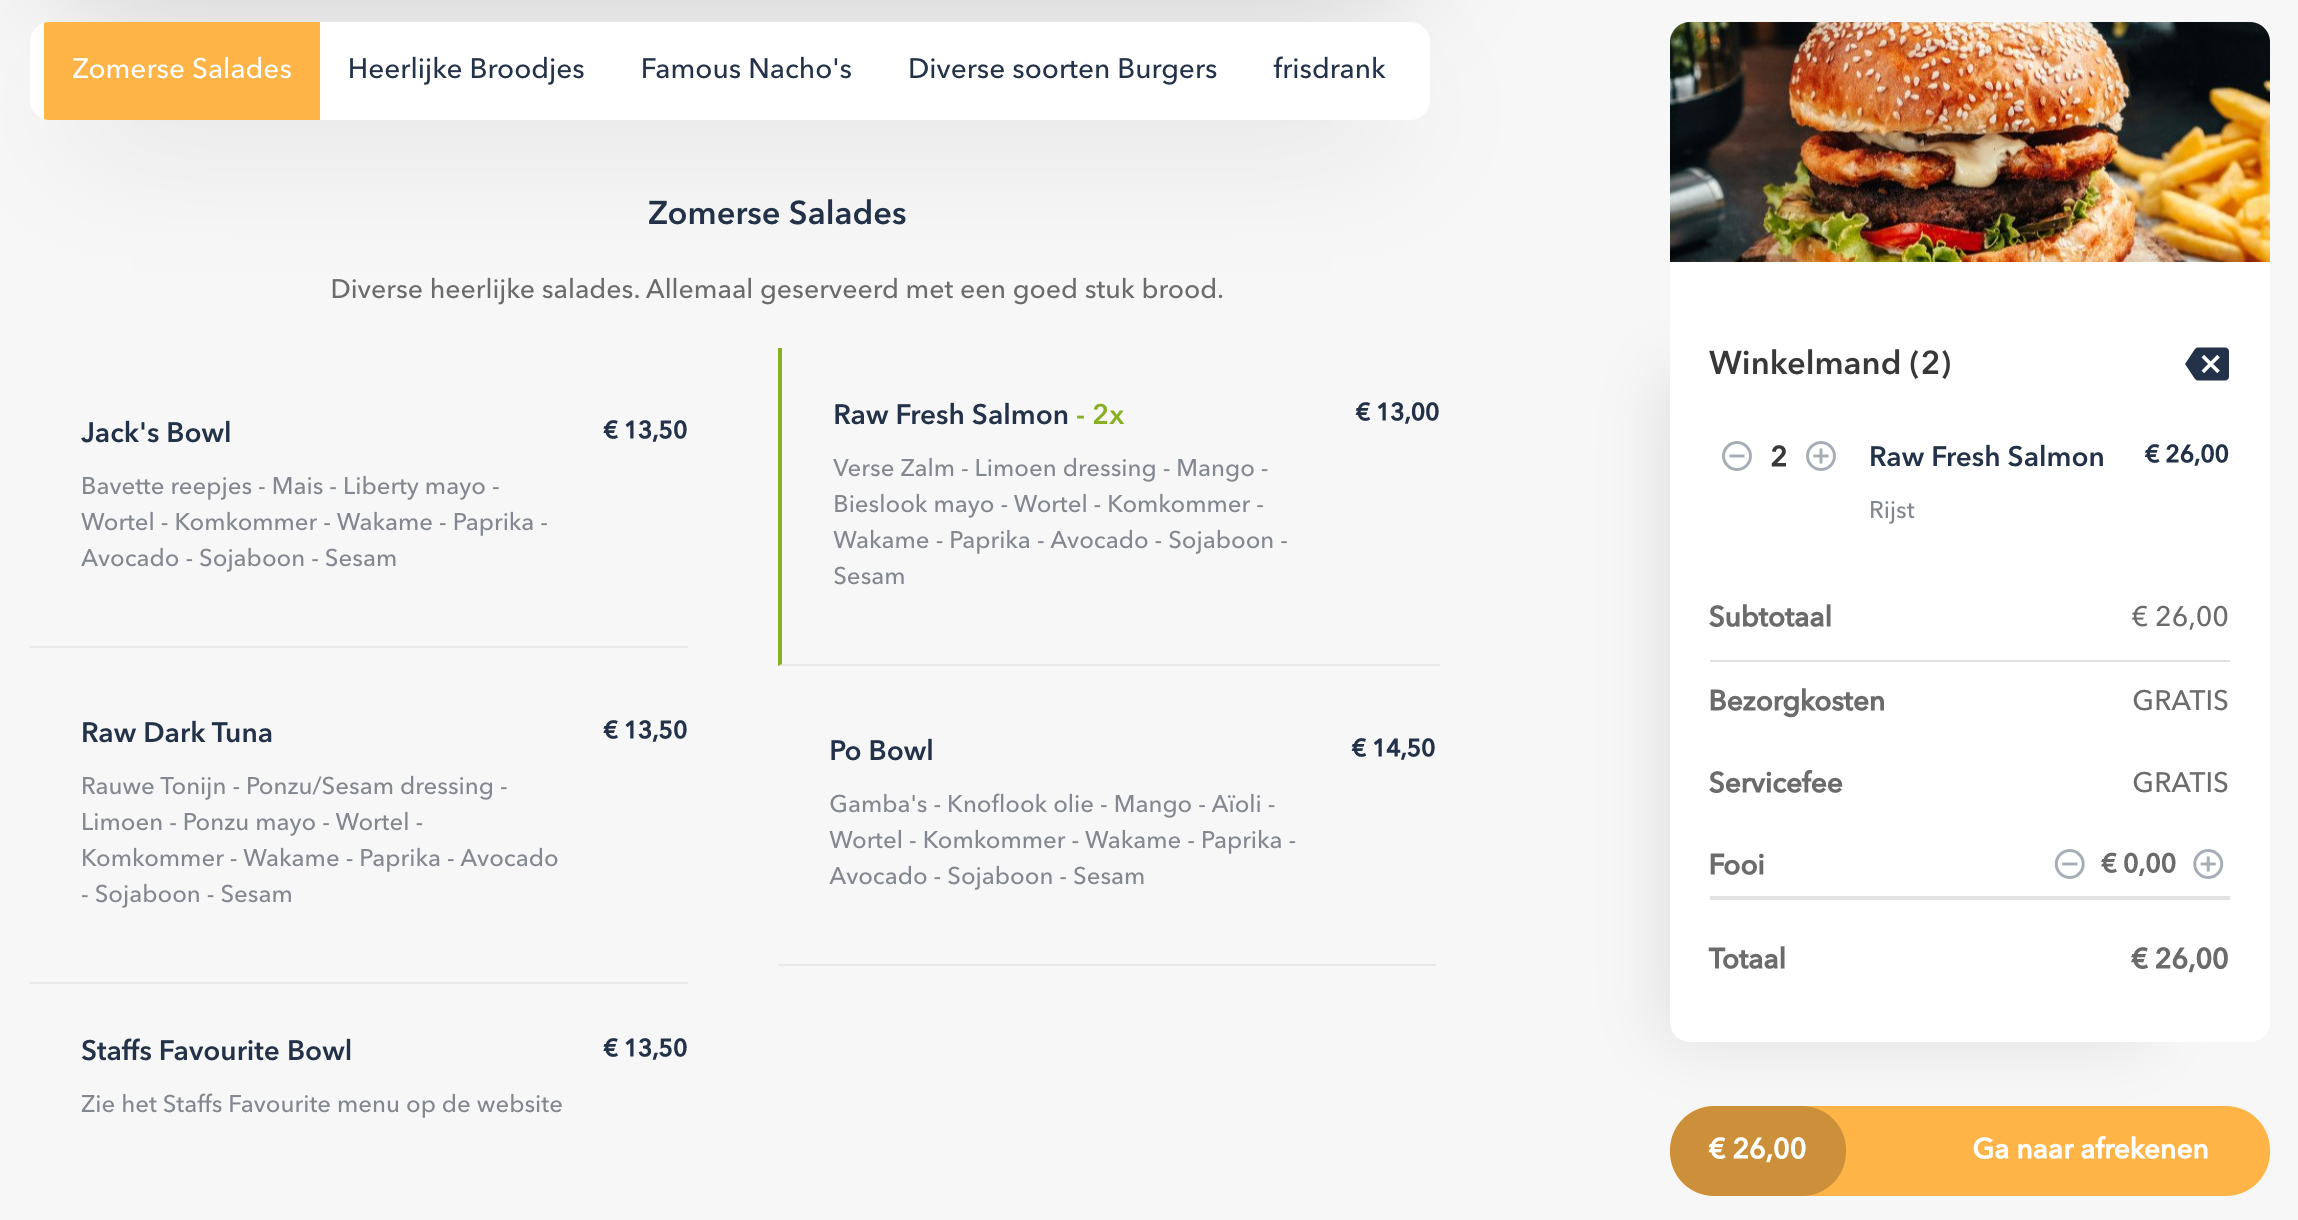 Bistroo marketplace quick menu navigation tool